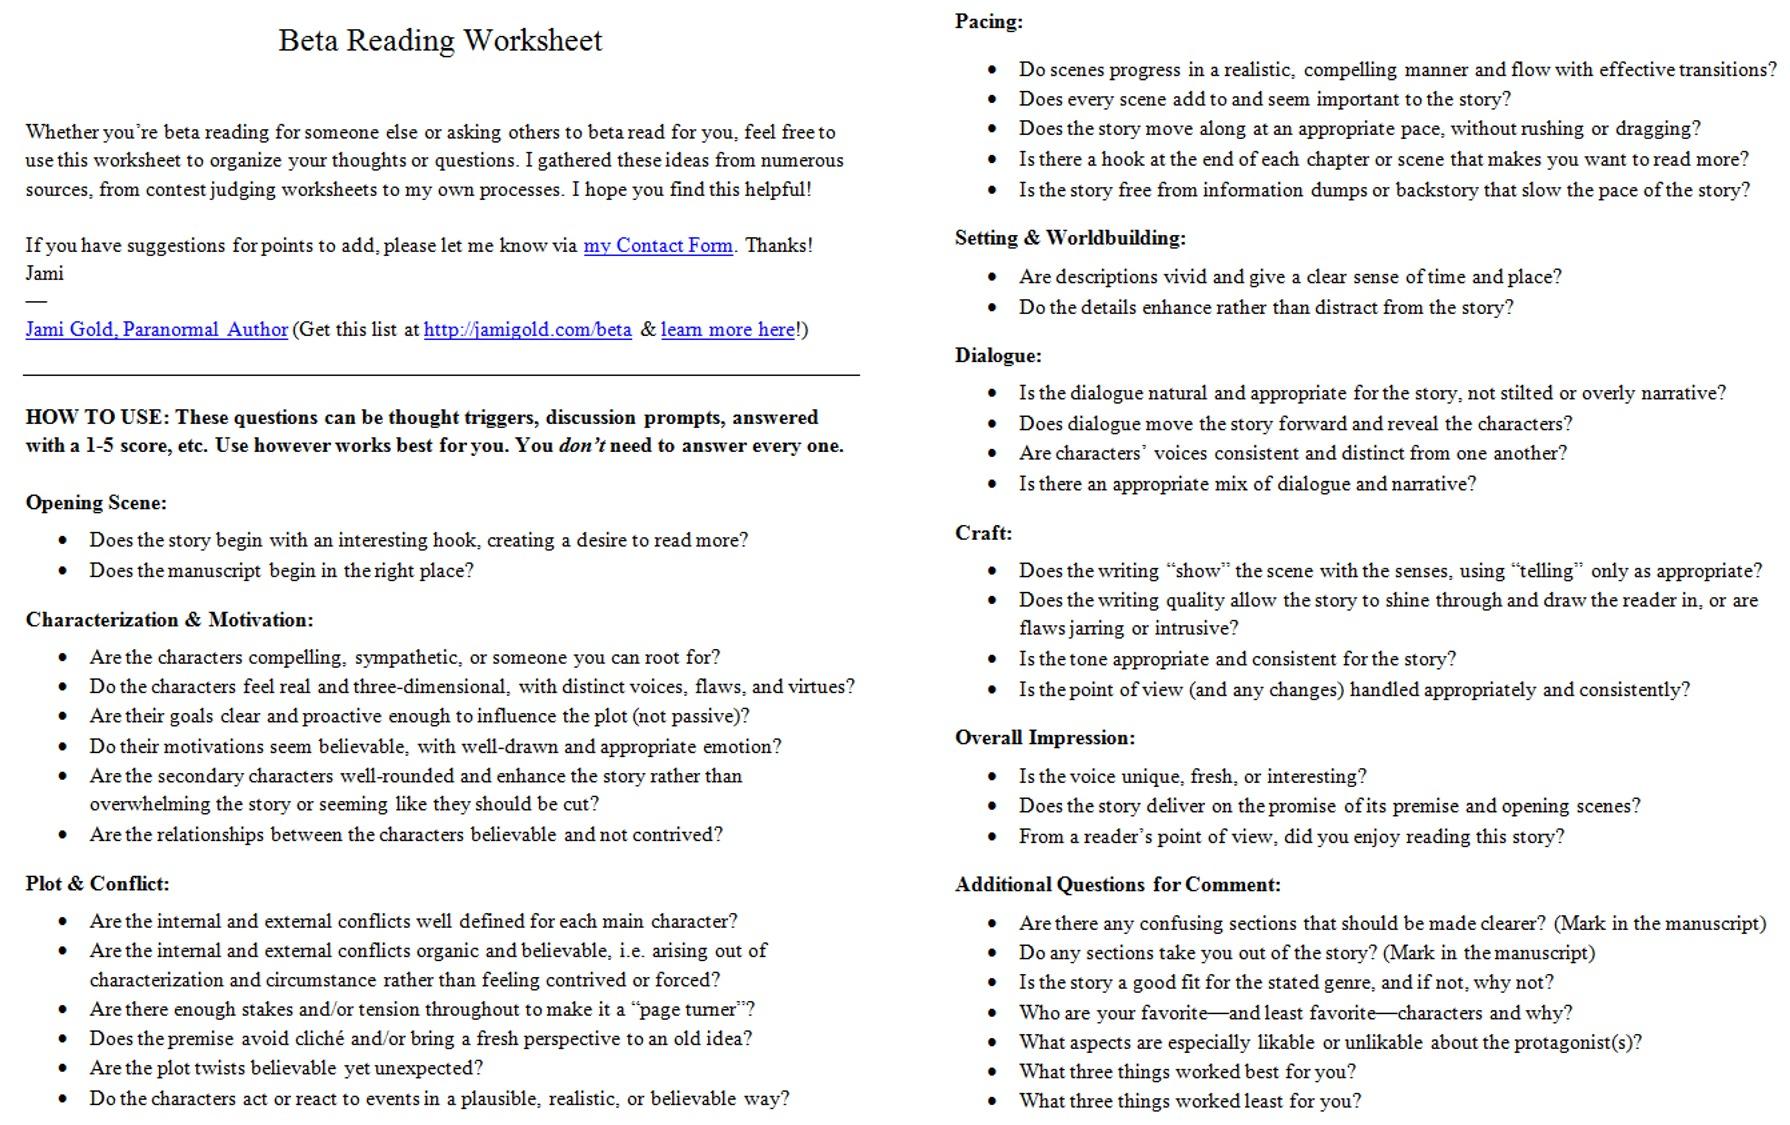 Proatmealus  Pretty Worksheets For Writers  Jami Gold Paranormal Author With Entrancing Screen Shot Of The Twopage Beta Reading Worksheet With Endearing Cell Transport Worksheet Also Preposition Worksheets In Addition Graphing Worksheets And Sentence Structure Worksheets As Well As Dilations Worksheet Additionally Solving Rational Equations Worksheet From Jamigoldcom With Proatmealus  Entrancing Worksheets For Writers  Jami Gold Paranormal Author With Endearing Screen Shot Of The Twopage Beta Reading Worksheet And Pretty Cell Transport Worksheet Also Preposition Worksheets In Addition Graphing Worksheets From Jamigoldcom